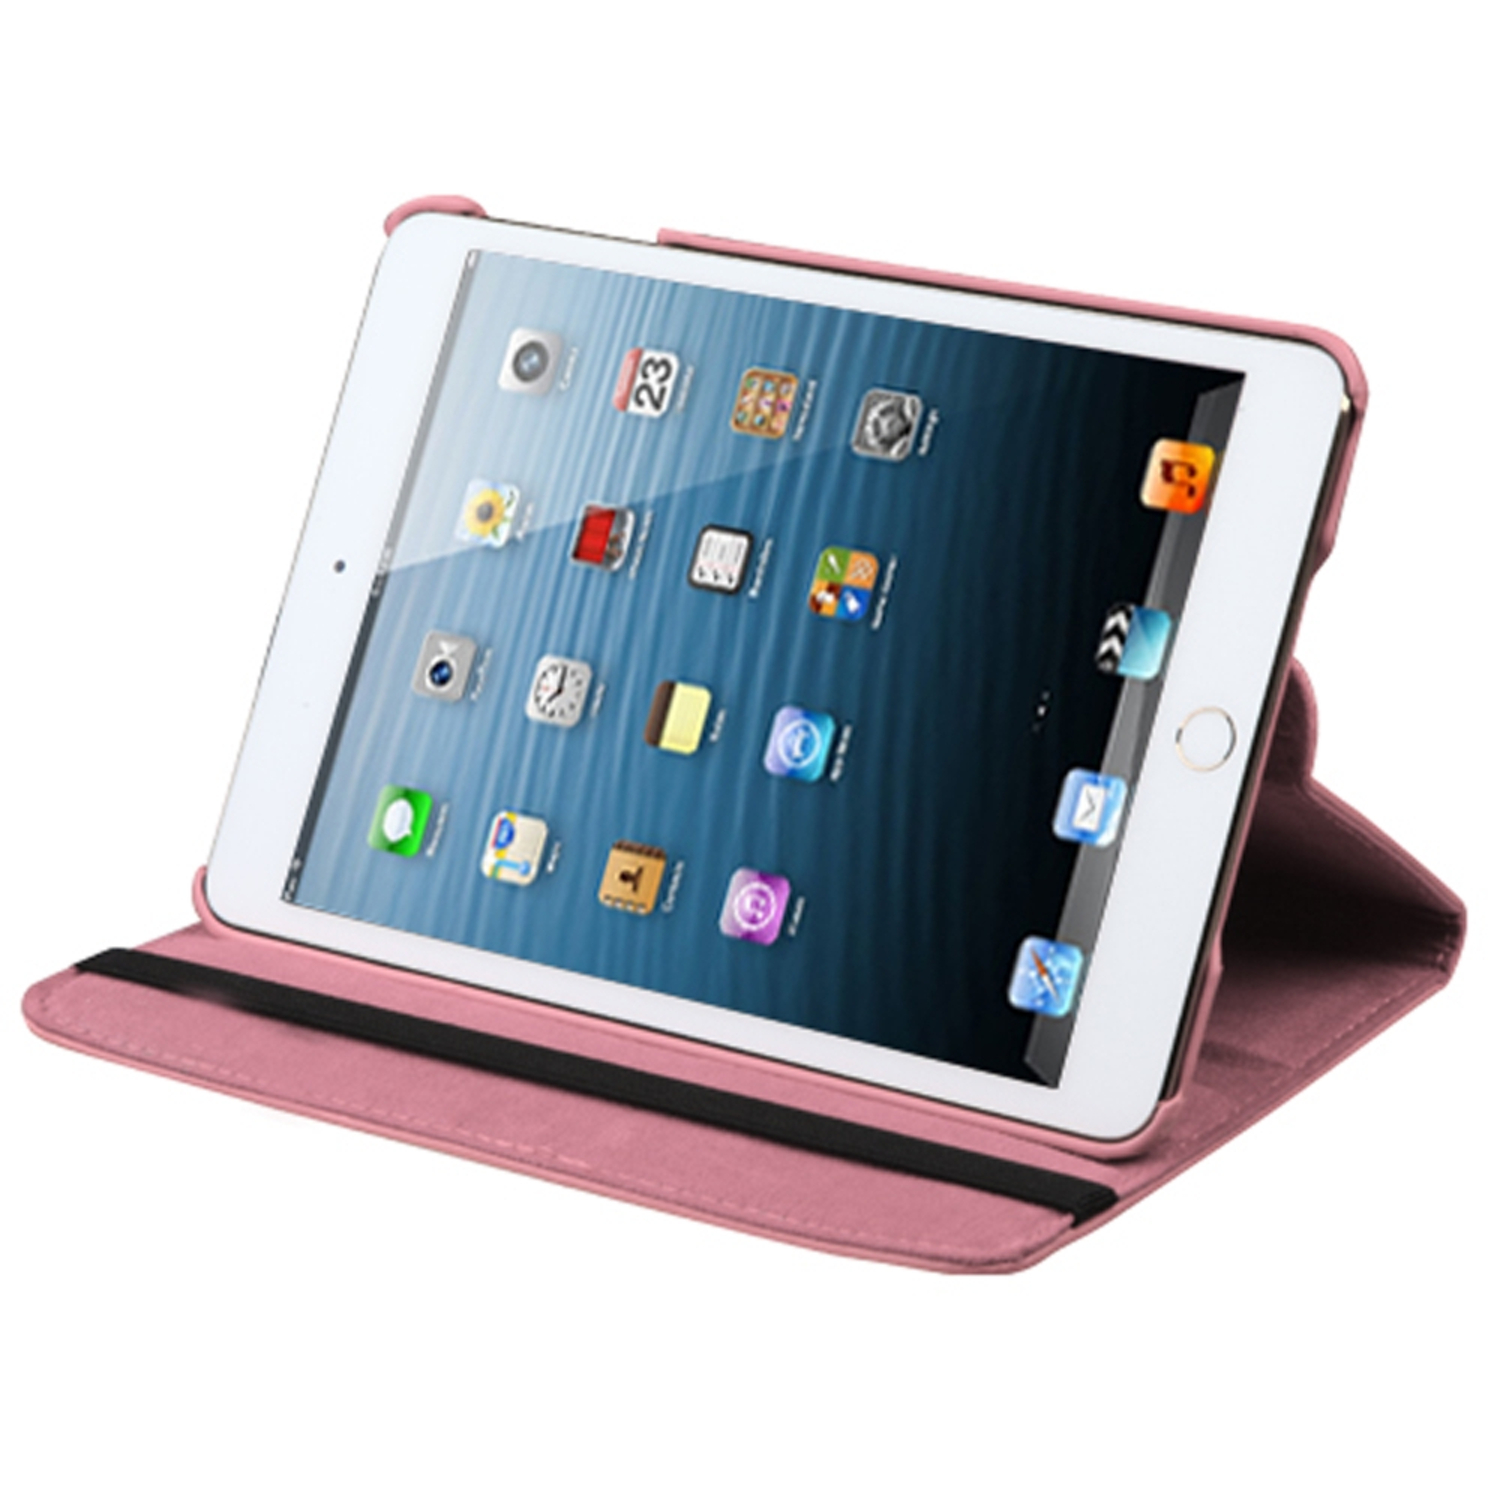 Insten Multi-Viewing Leather Stand Cover Case For iPad Mini 3 2 1 - Pink